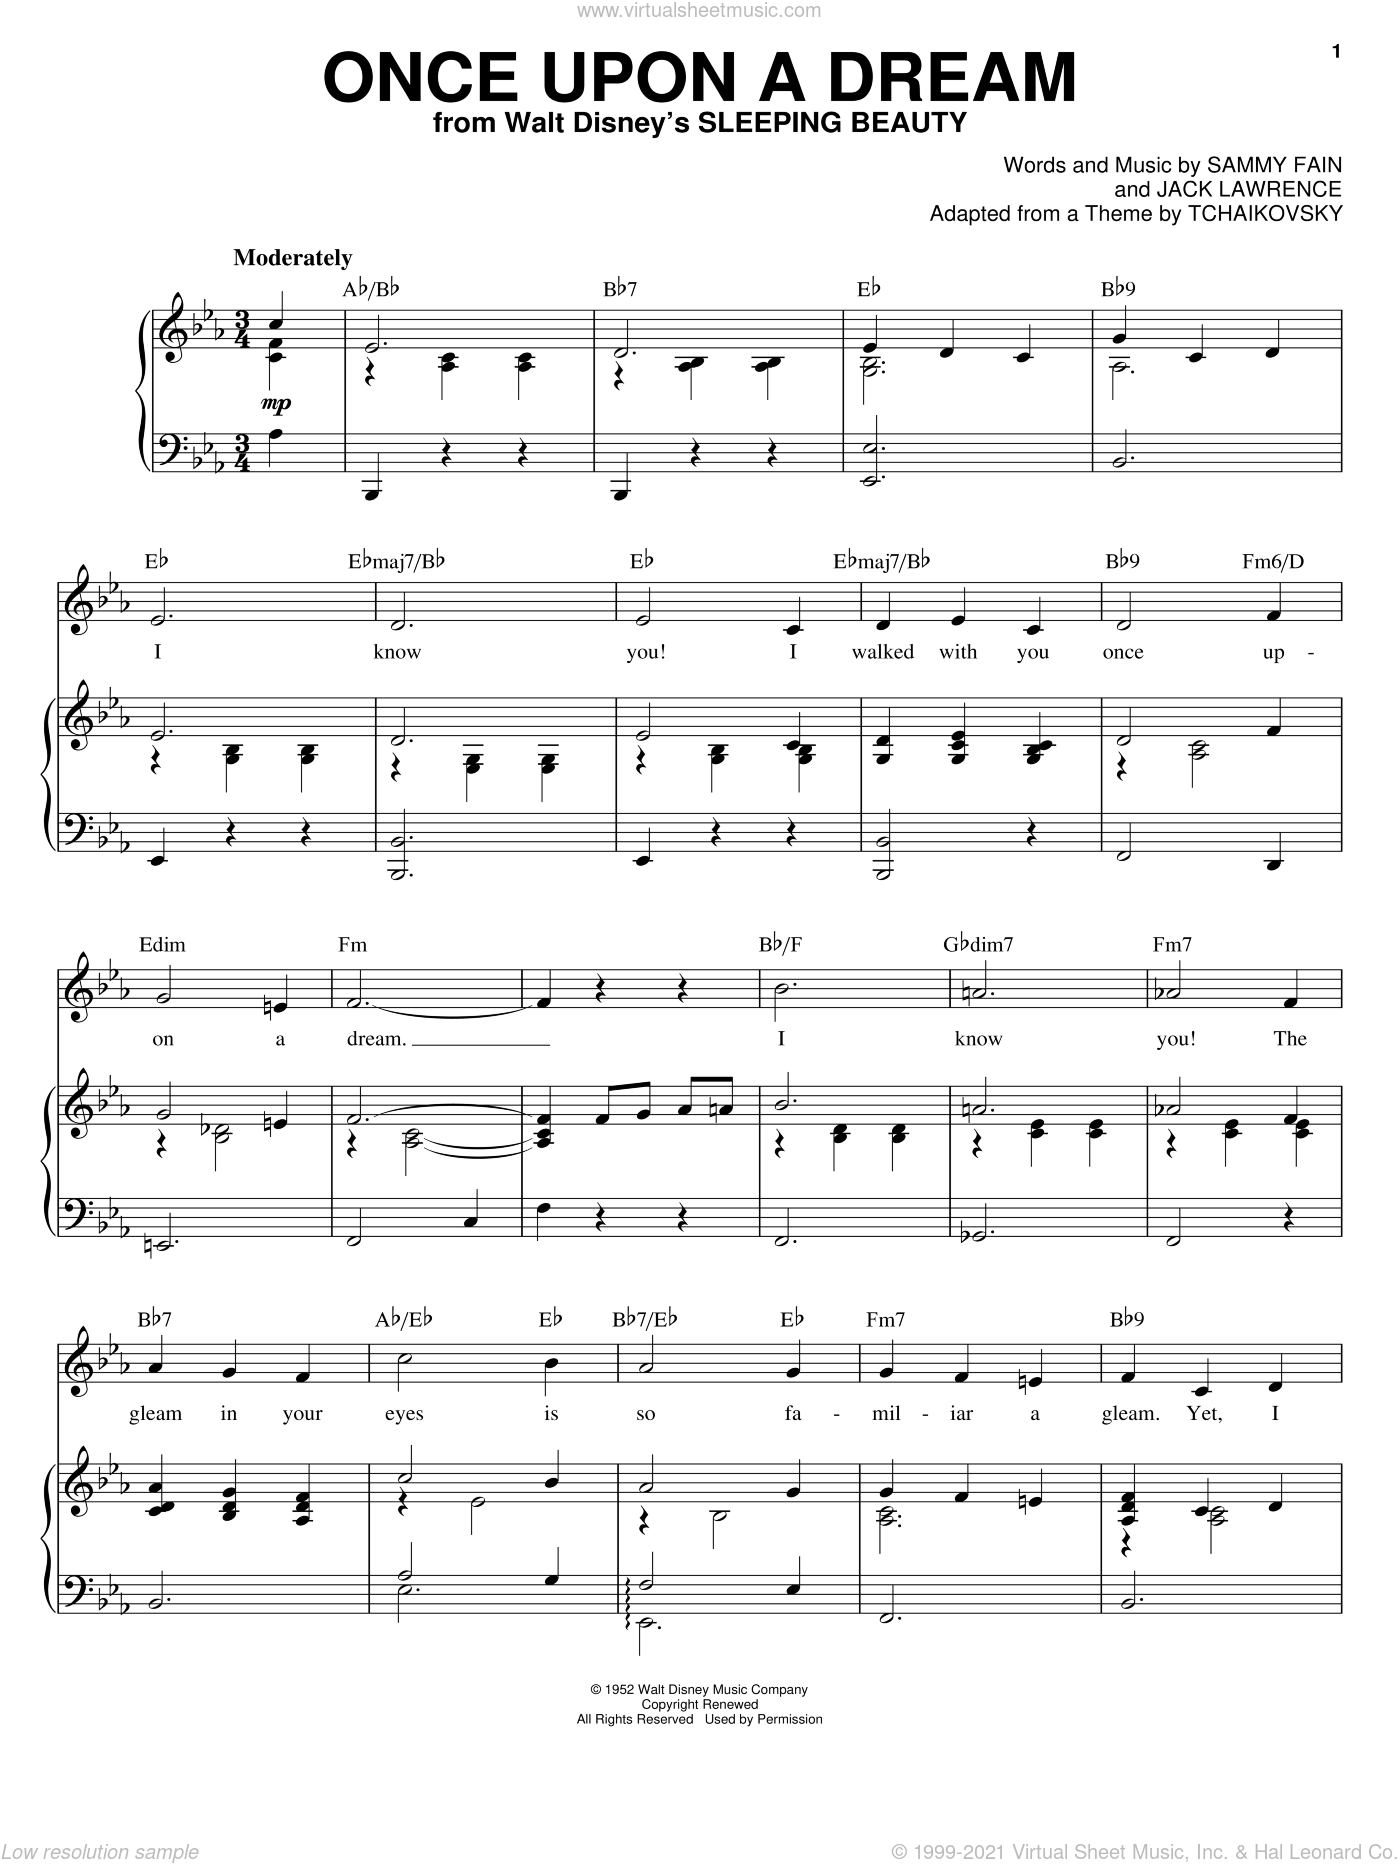 Once Upon A Dream sheet music for voice and piano by Jack Lawrence